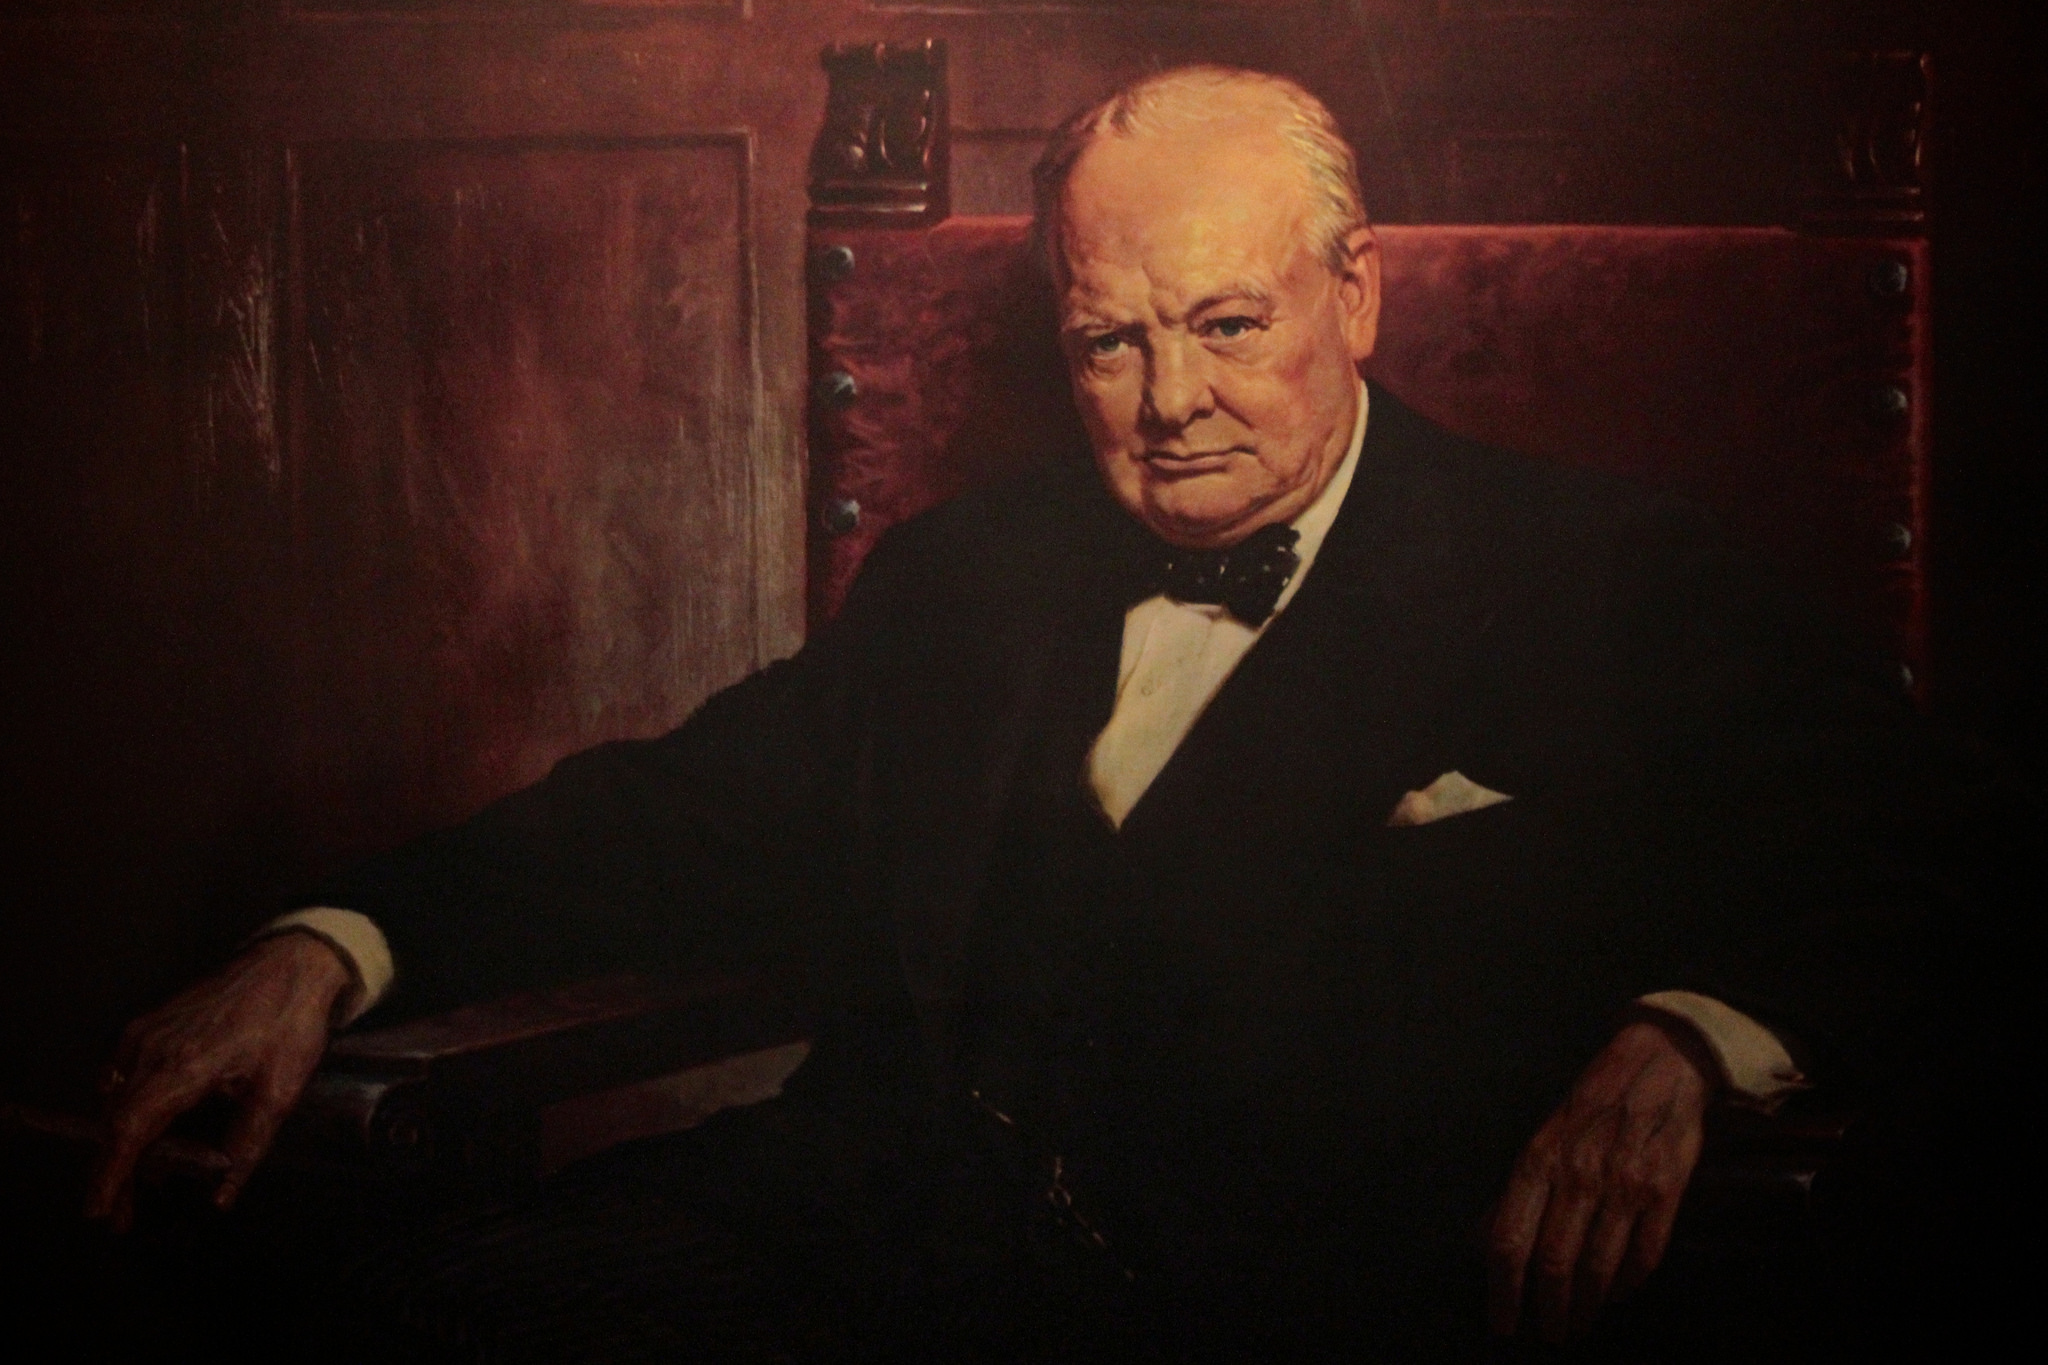 churchill essay on aliens is a timely reminder of dangers earth faces